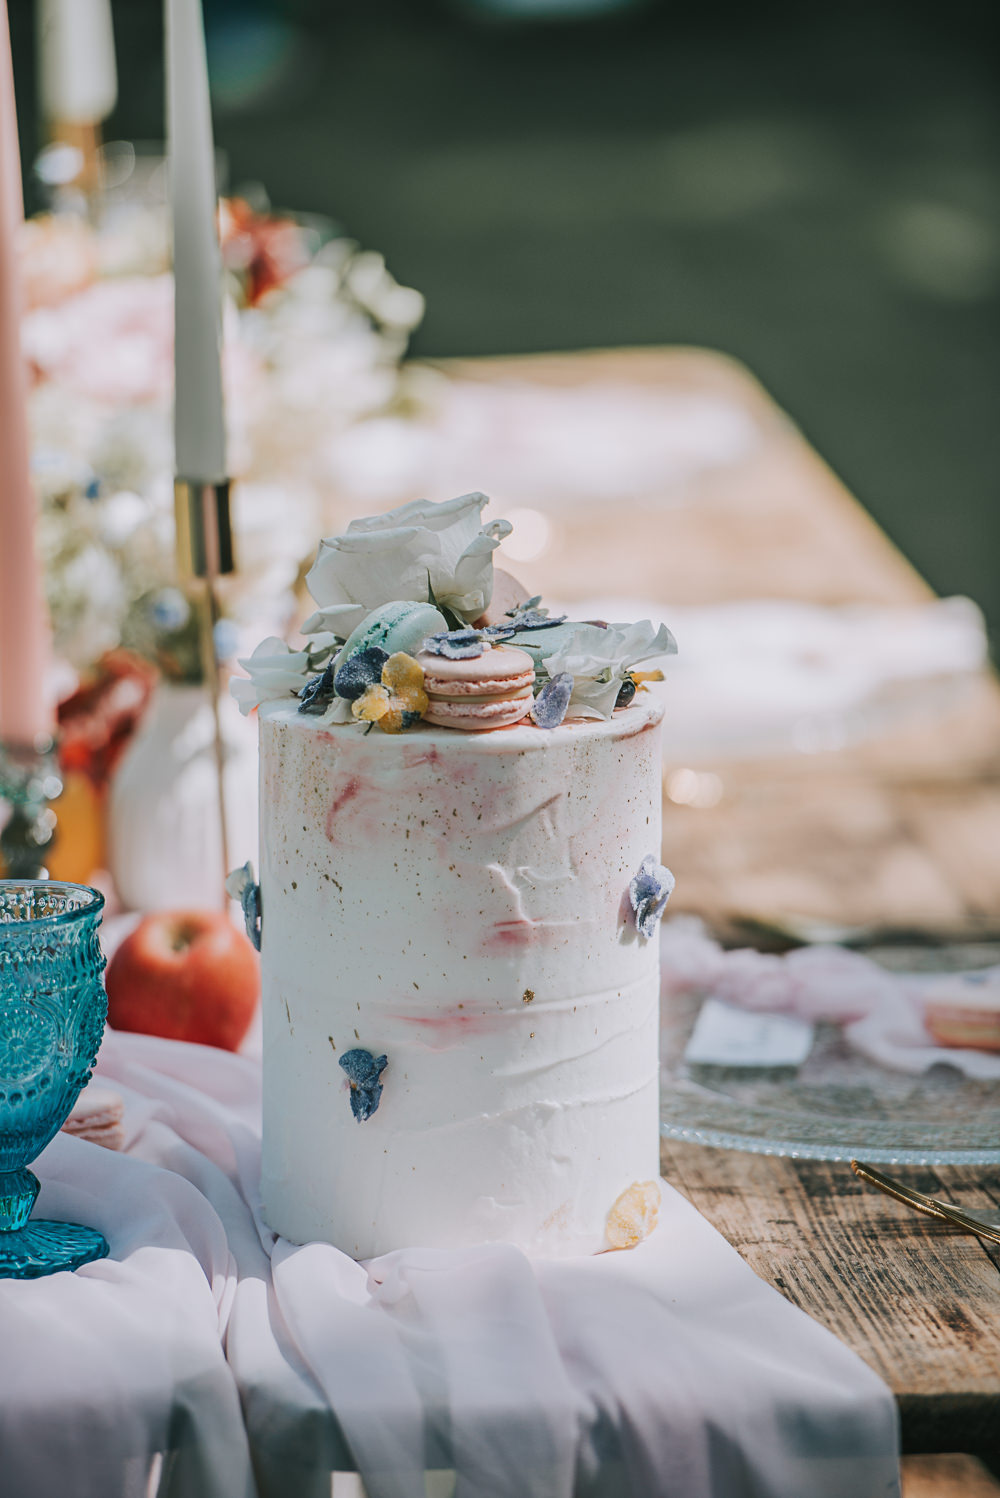 Cake Airbrush Macaron Blush Petal Floral River Romance Wedding Ideas Mindy Coe Photography